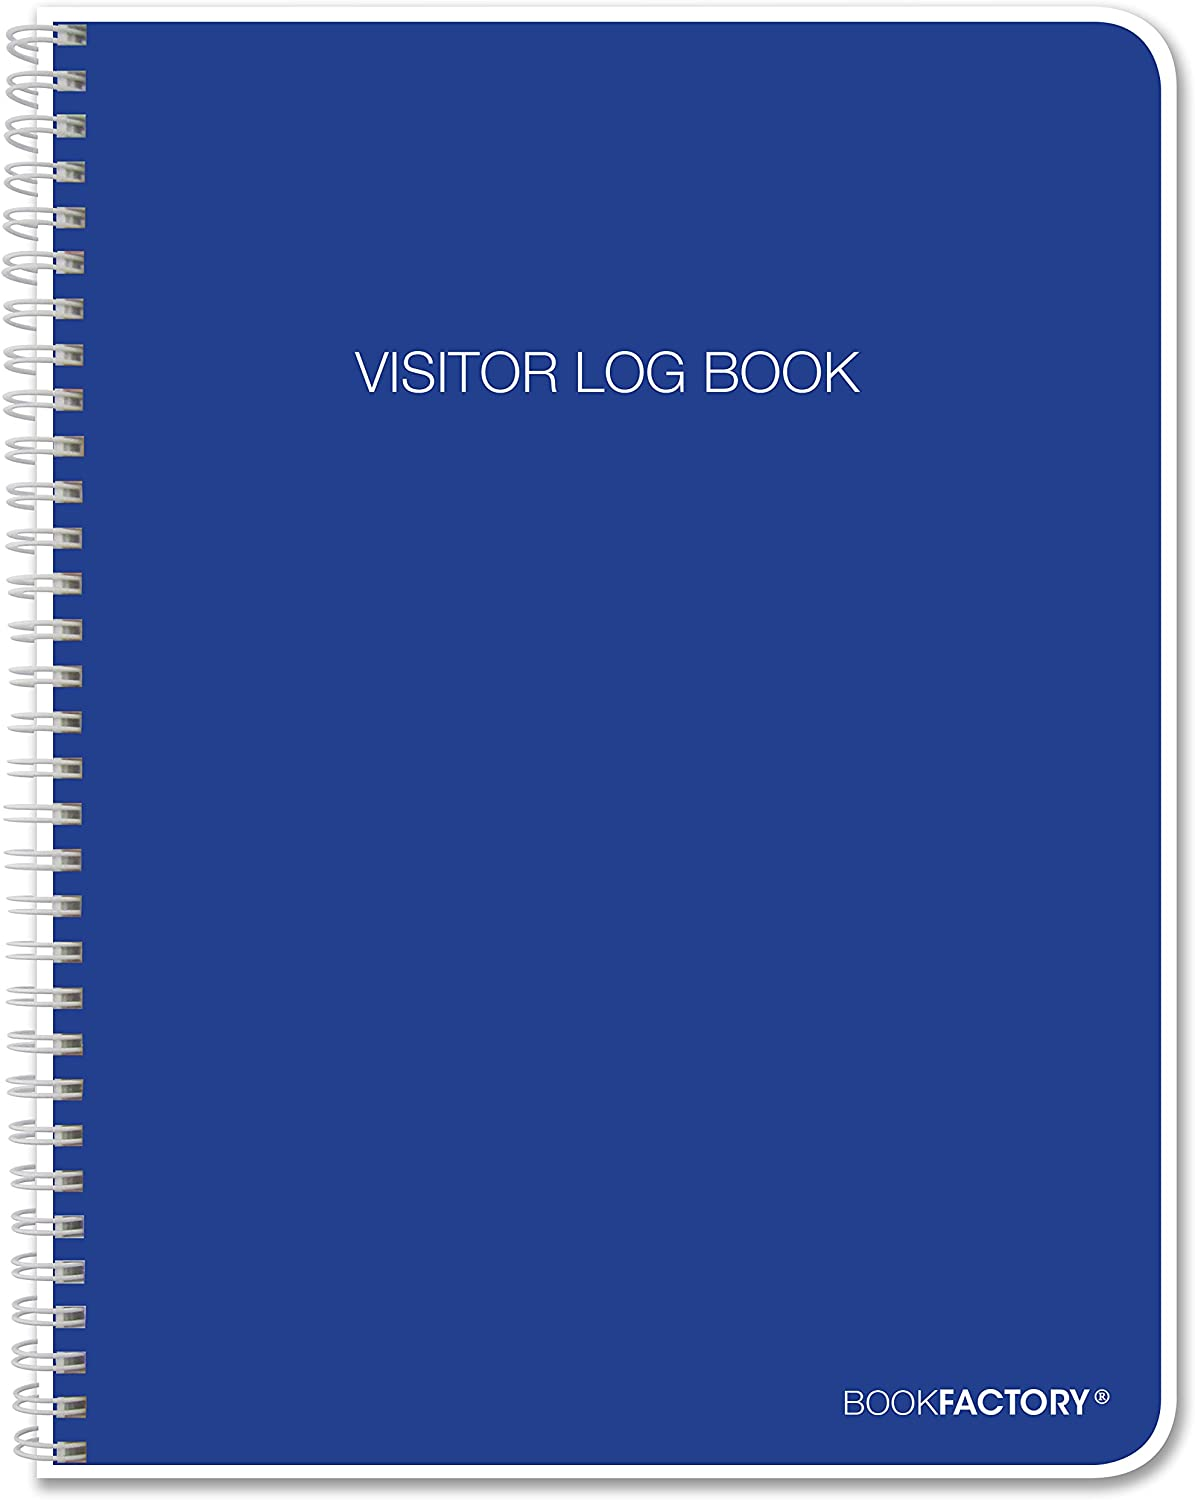 BookFactory Visitor Log Book/Visitor Register/Visitor Sign-in Book - 120 Pages, 8 1/2